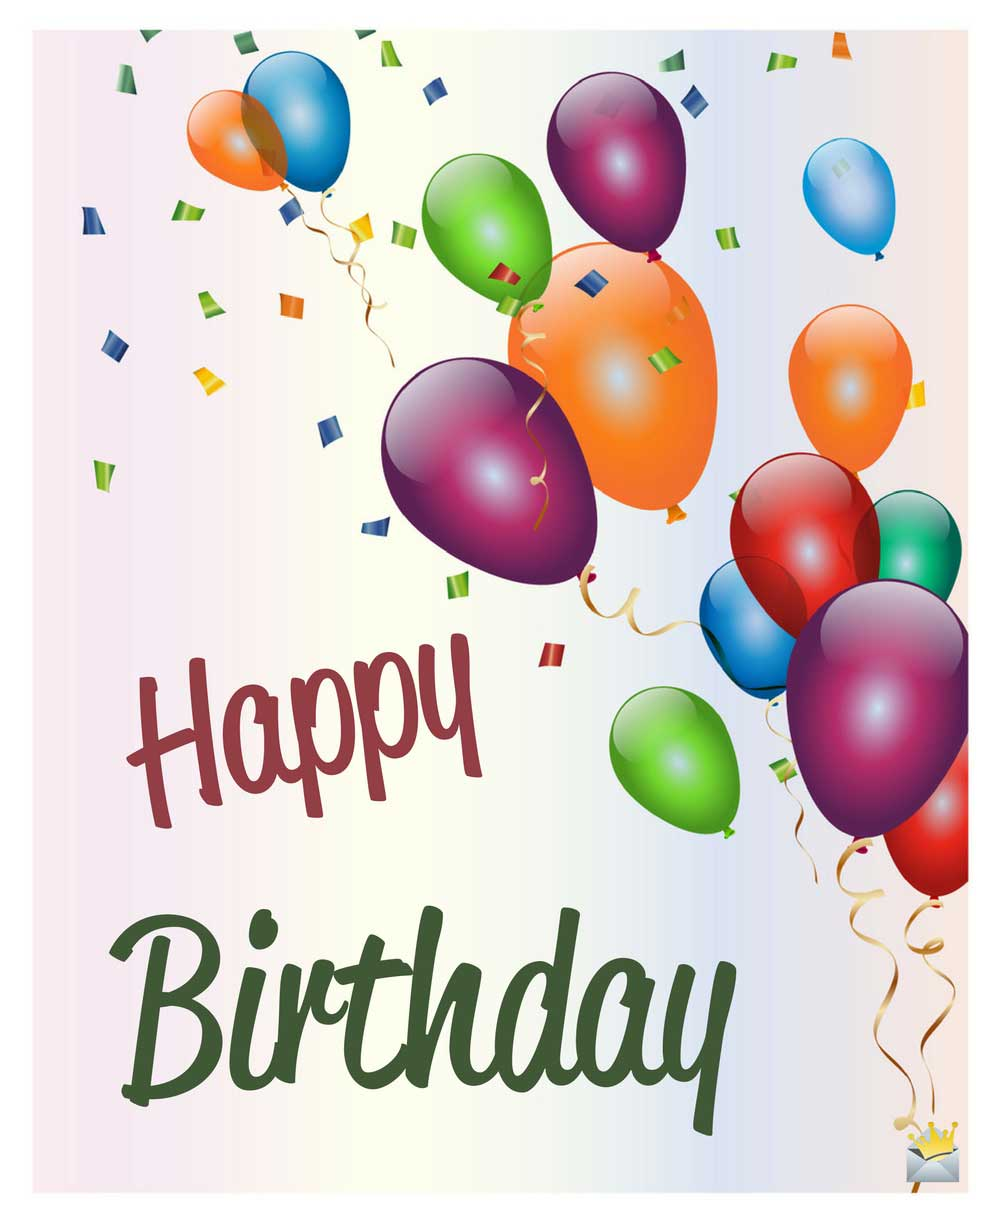 2019 Birthday Wishes Images Hd For Girlfriend